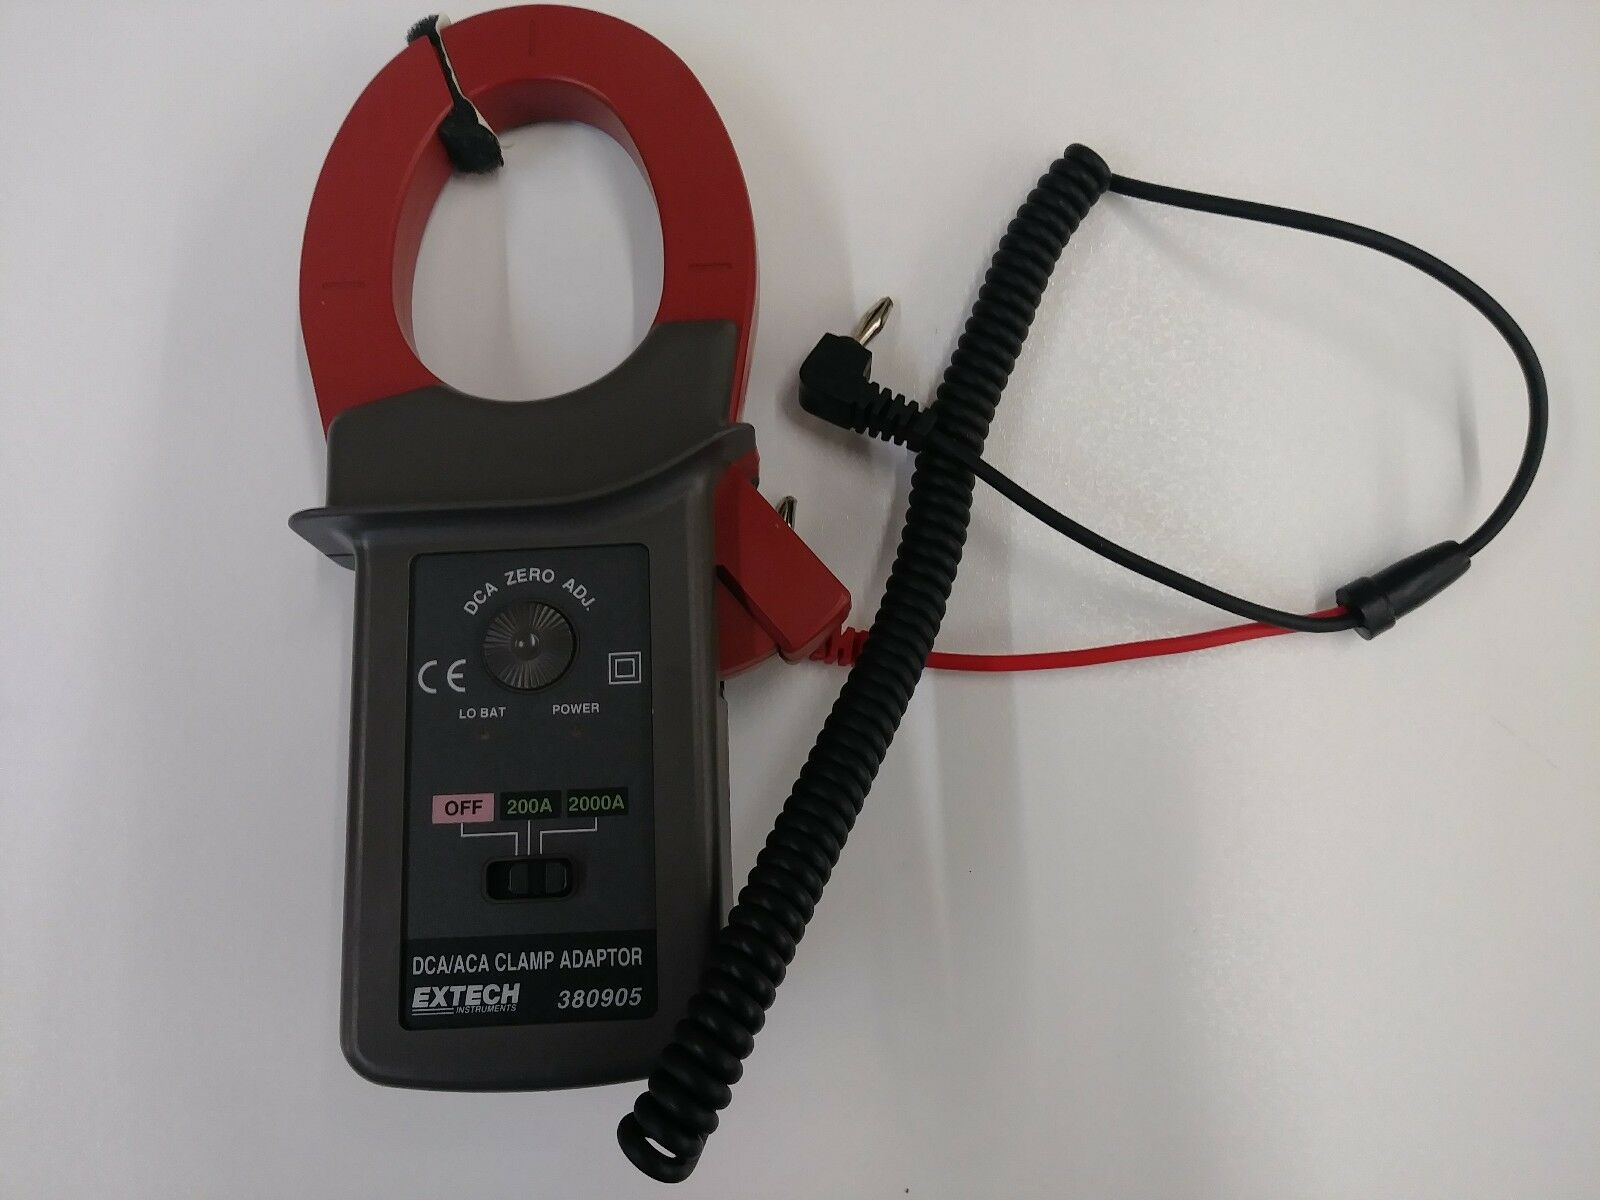 Extech 2000 Amp Clamp On Multi Meter Adapter.